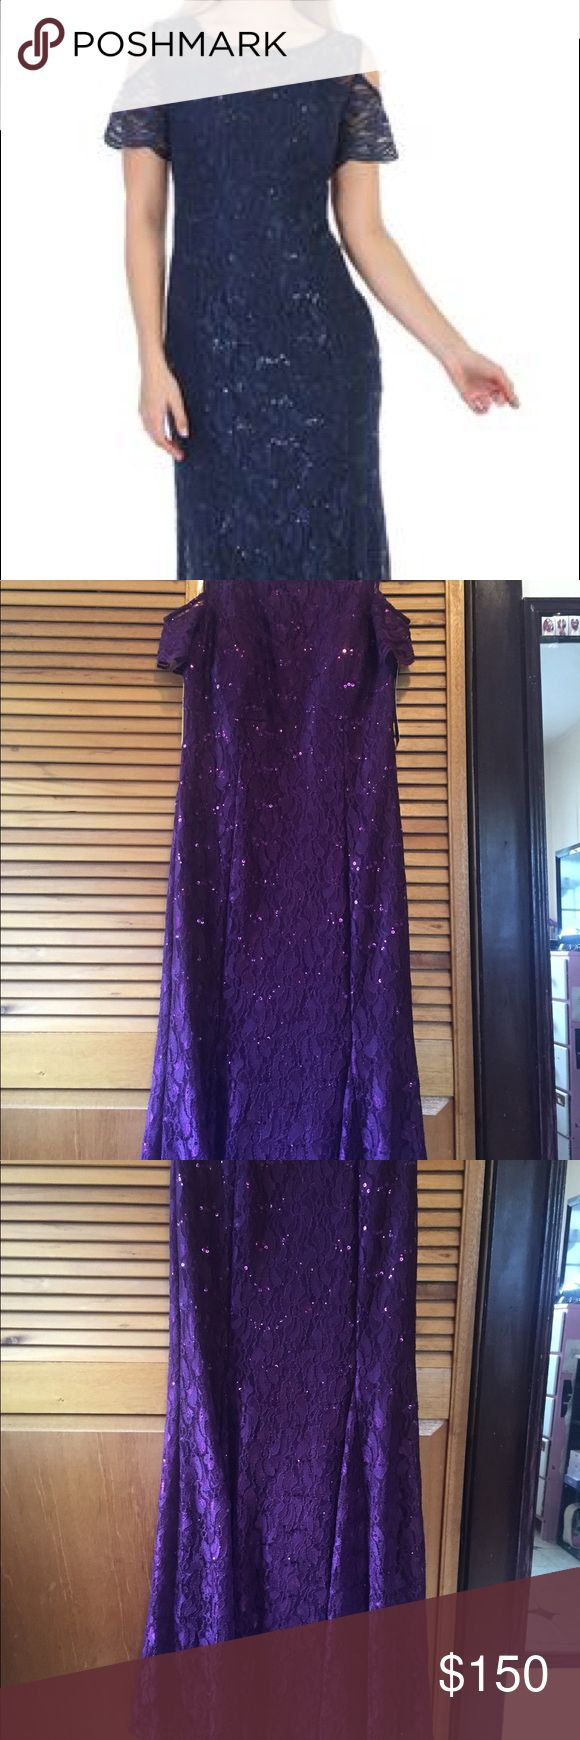 Plum formal dress for prom or wedding Lace long formal dress with cold shoulder. Brand new. Never worn. Great for prom or mother of bride. Cover photo shows in navy but dress is plum. Sally USA Dresses Wedding